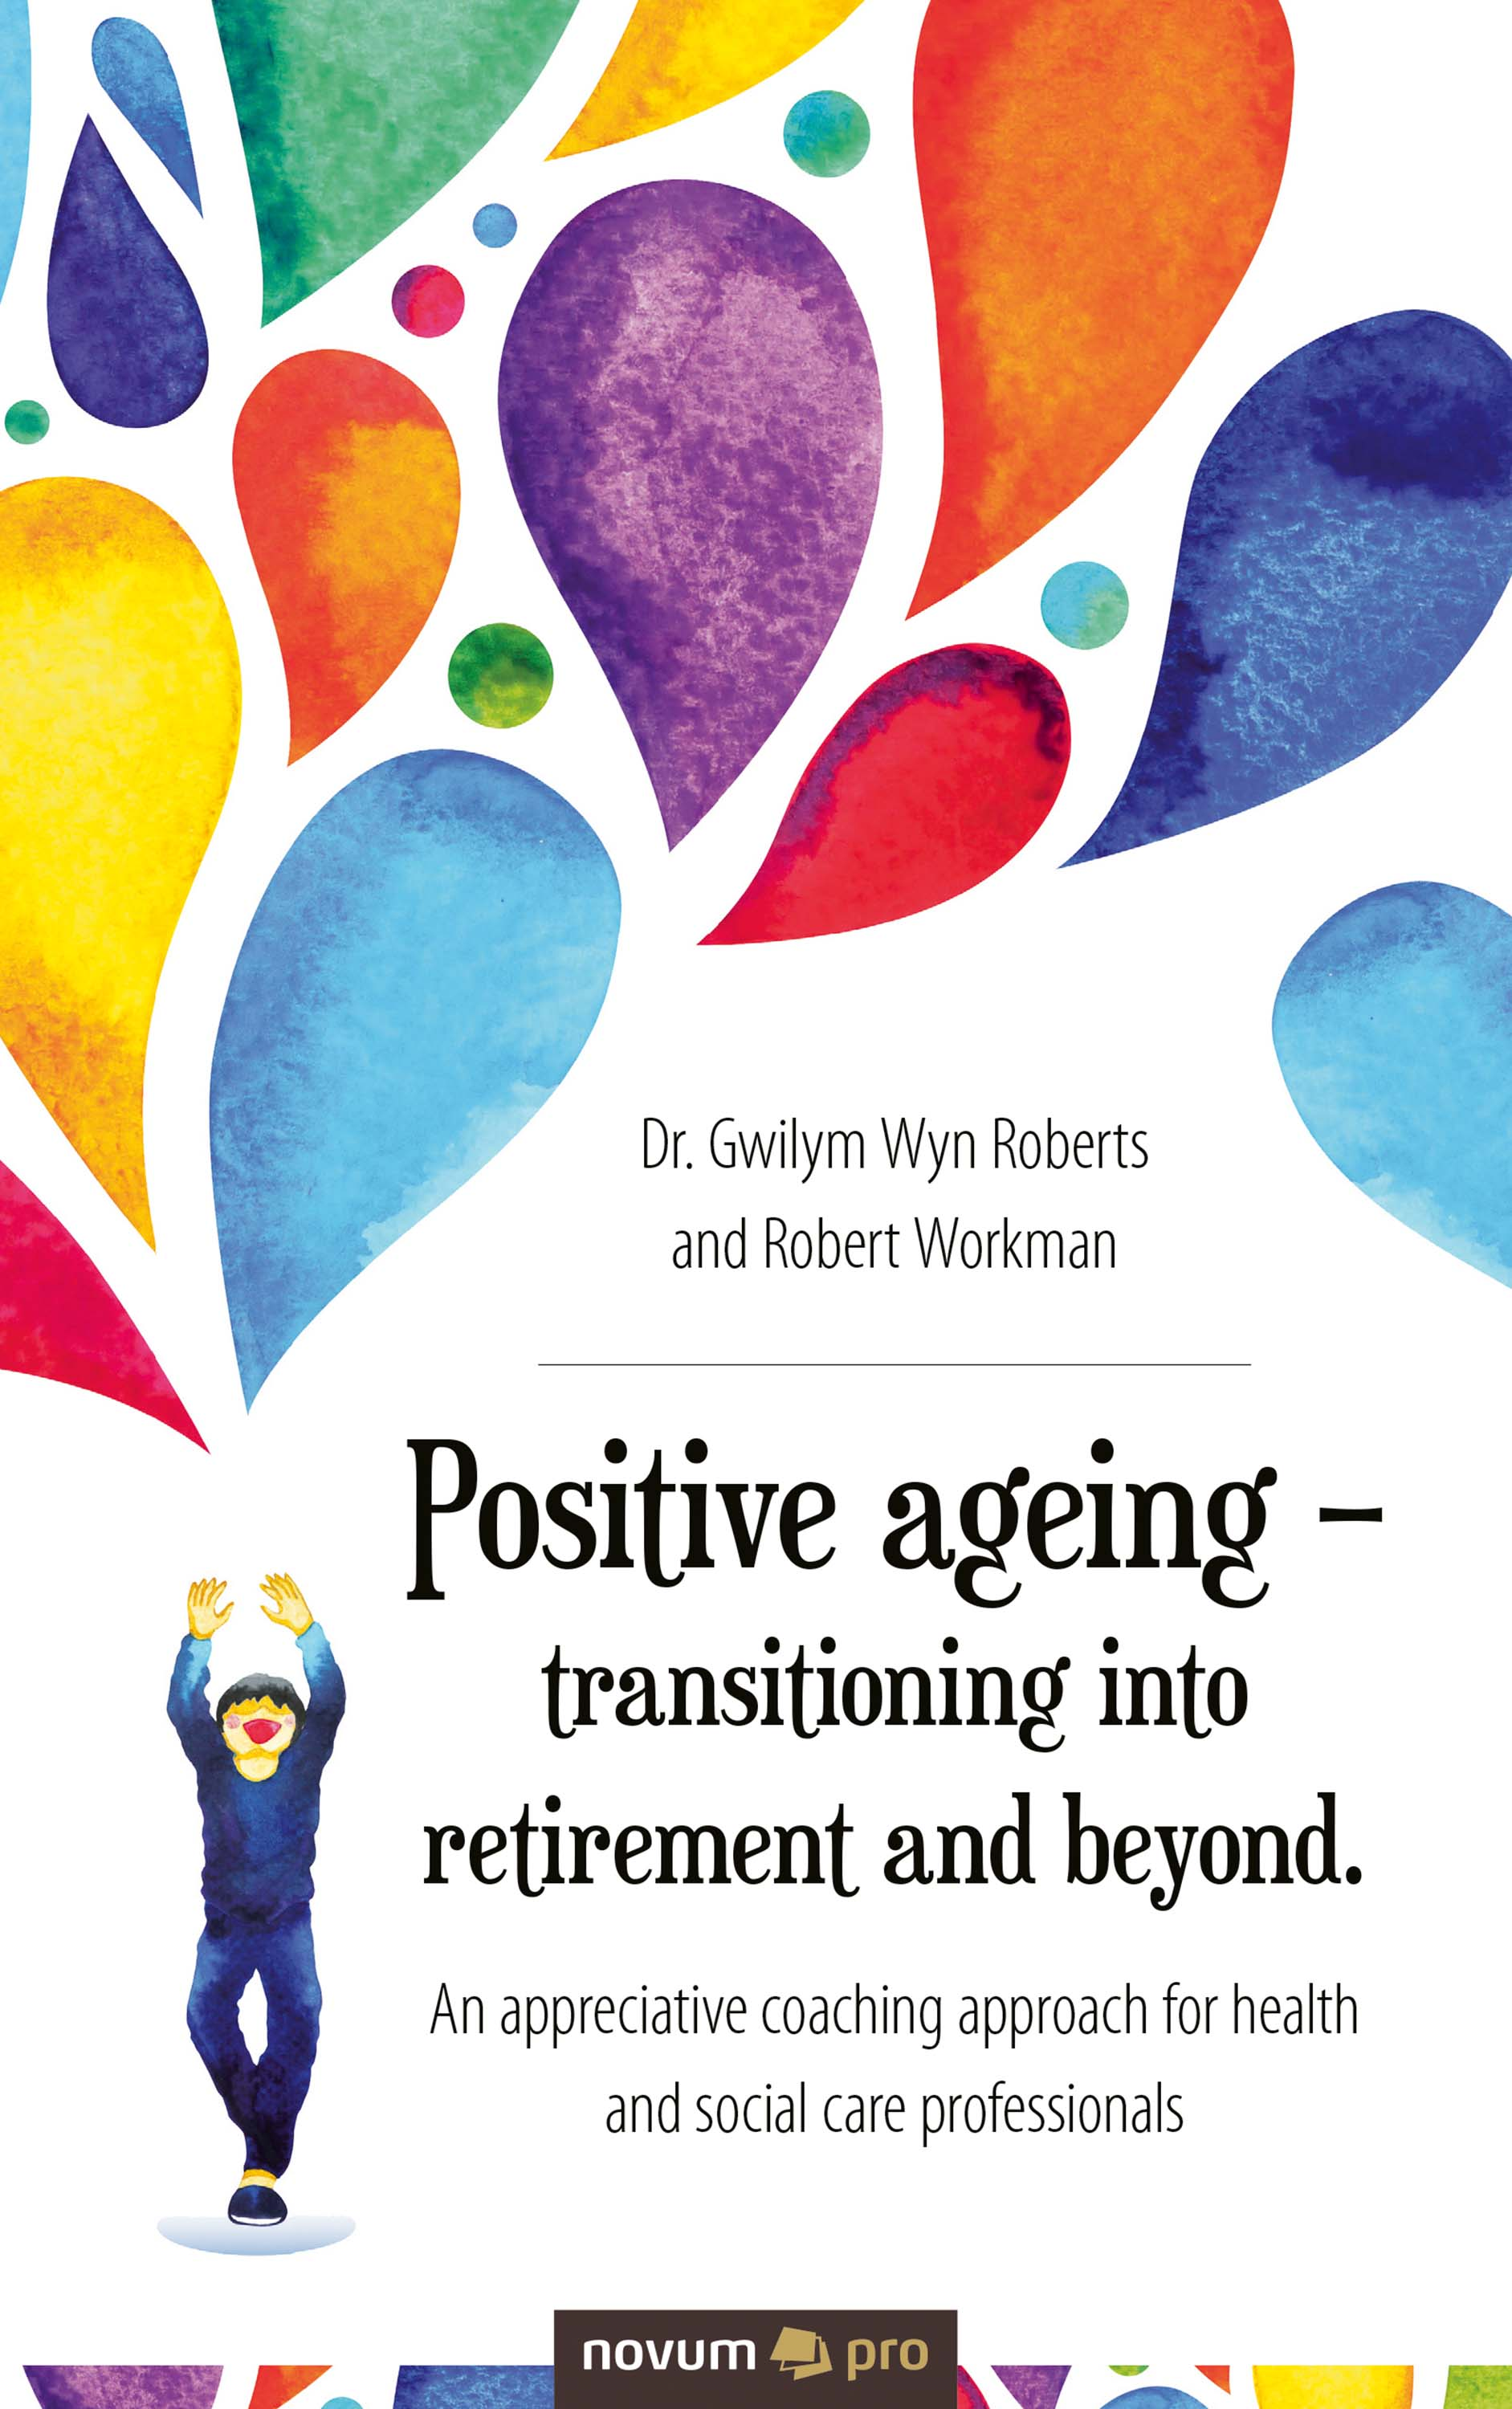 Dr. Gwilym Wyn Roberts and Robert Workman Positive ageing – transitioning into retirement and beyond.